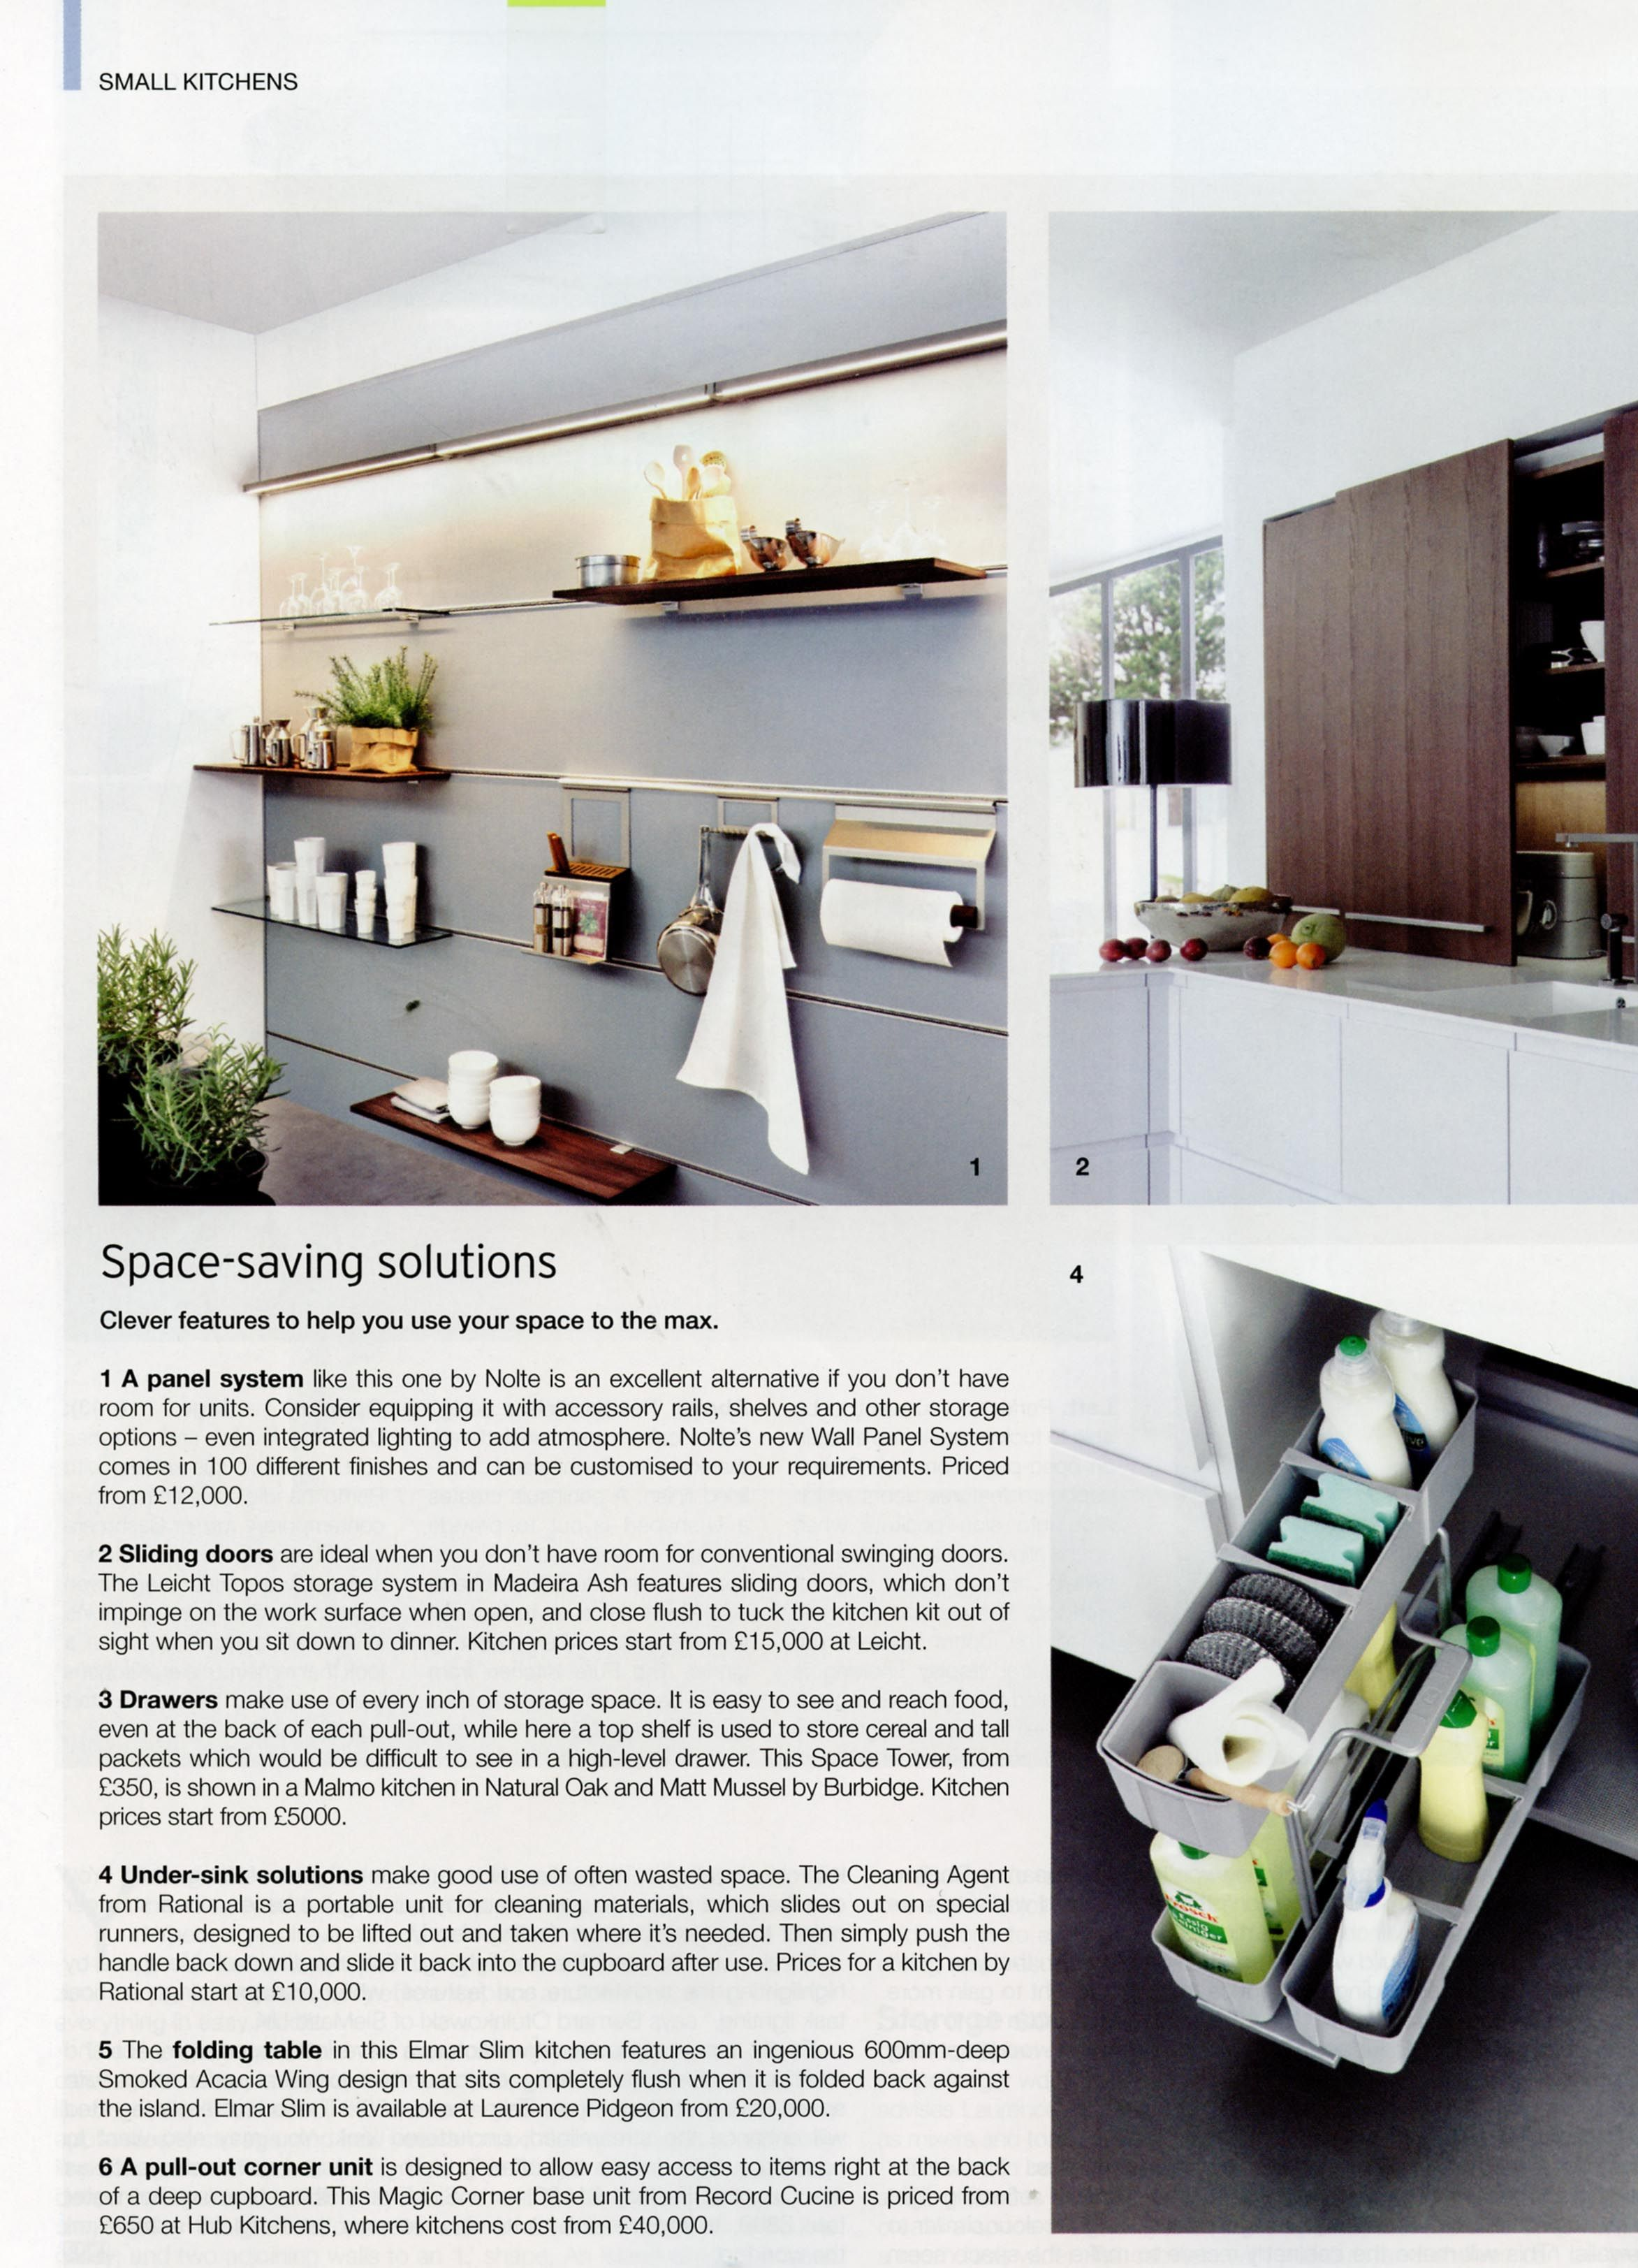 The ingenious elmar slim kitchen from laurence pidgeon http laurencepidgeon com